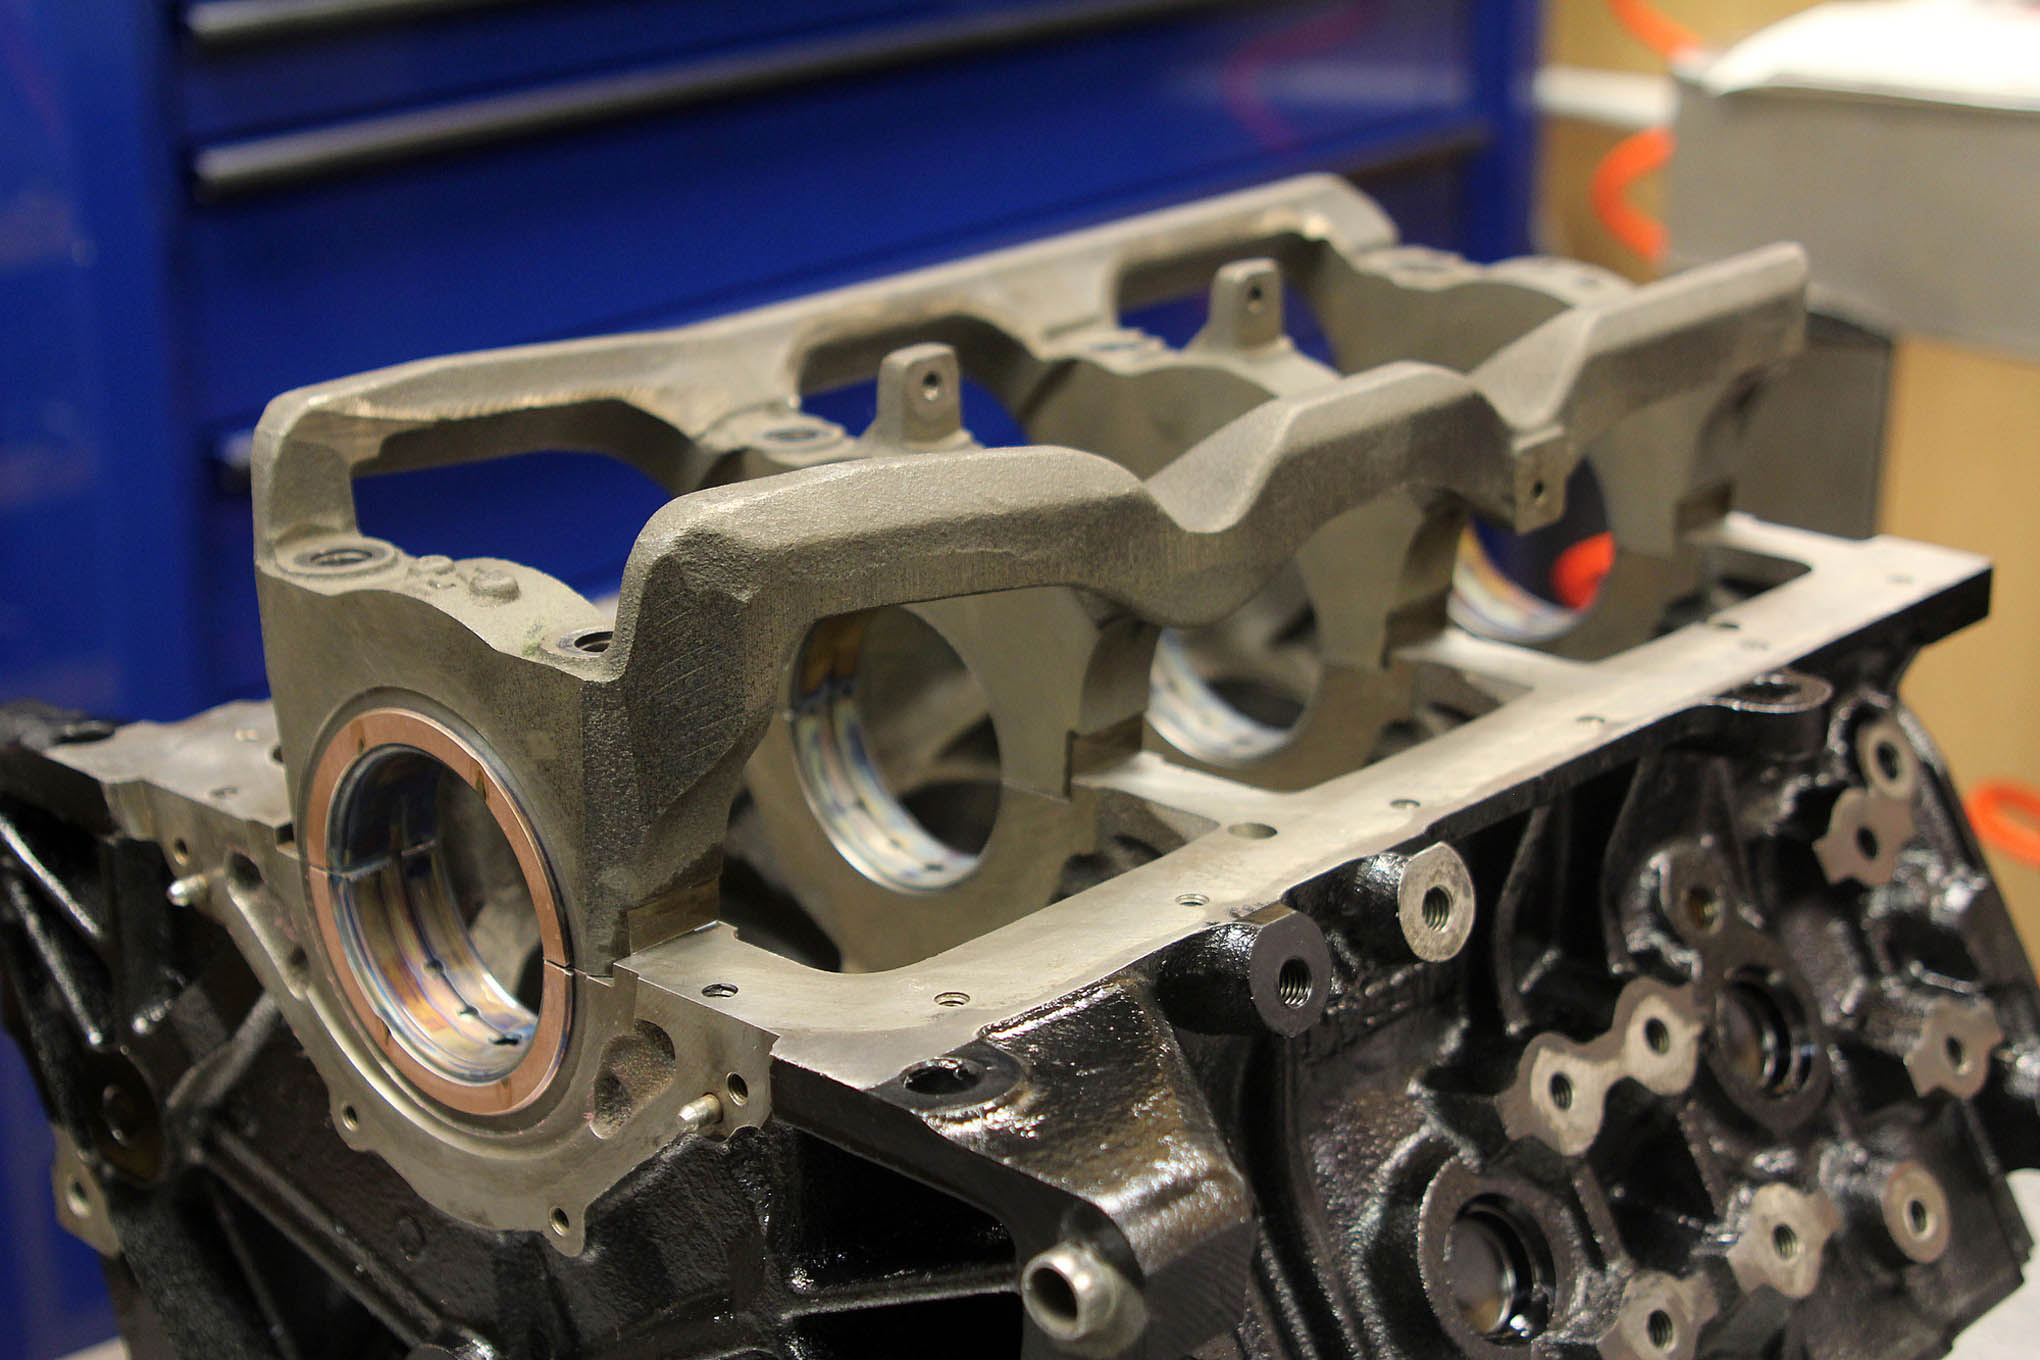 The basis of the engines used in the Pro Six class Nissan's VG30E block, which appeared in everything from pickup trucks, to minivans and even the 300ZX throughout most of the 1990's. As you can see, the design features an iron block with one-piece main cap assembly, and racers we've talked to say the bottom end is virtually bulletproof.